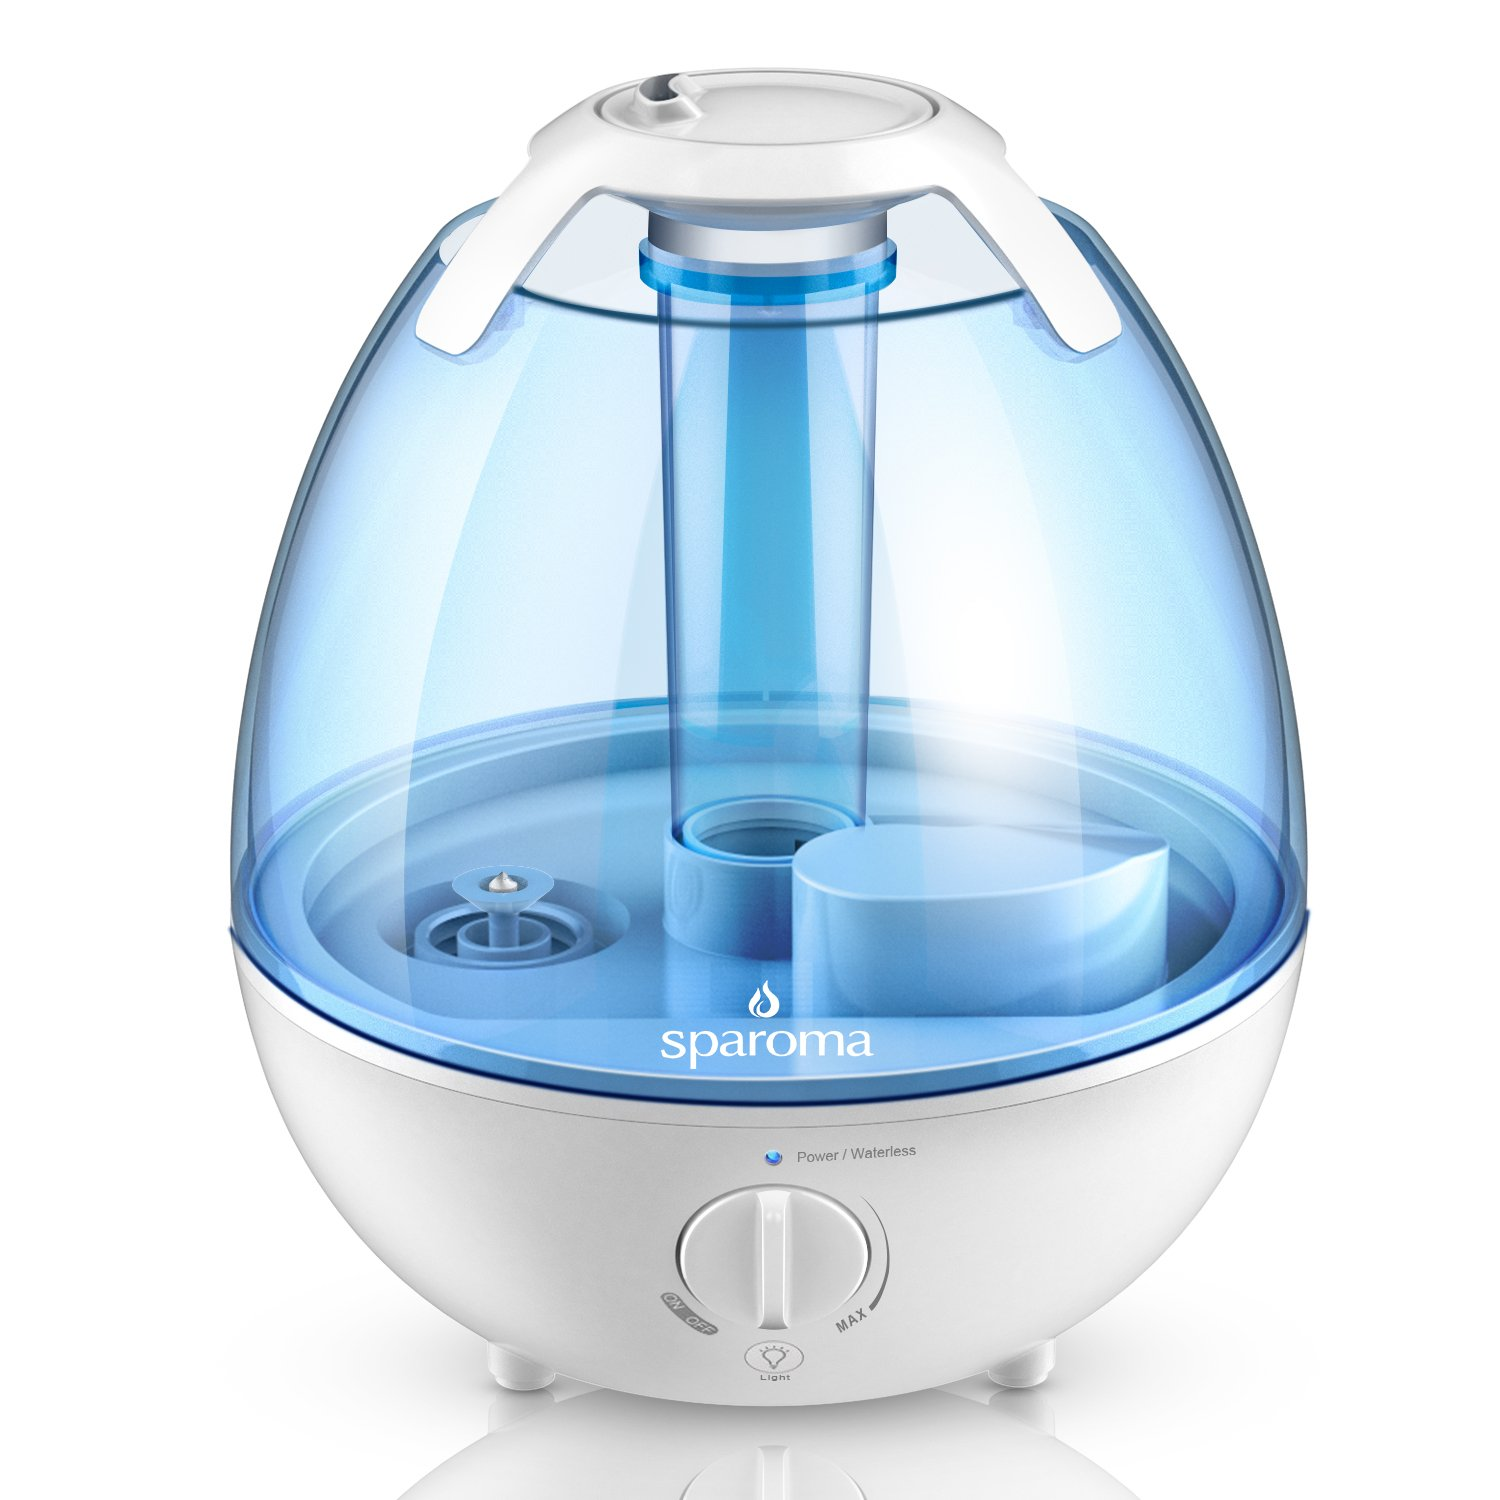 Sparoma Ultrasonic Humidifier Review